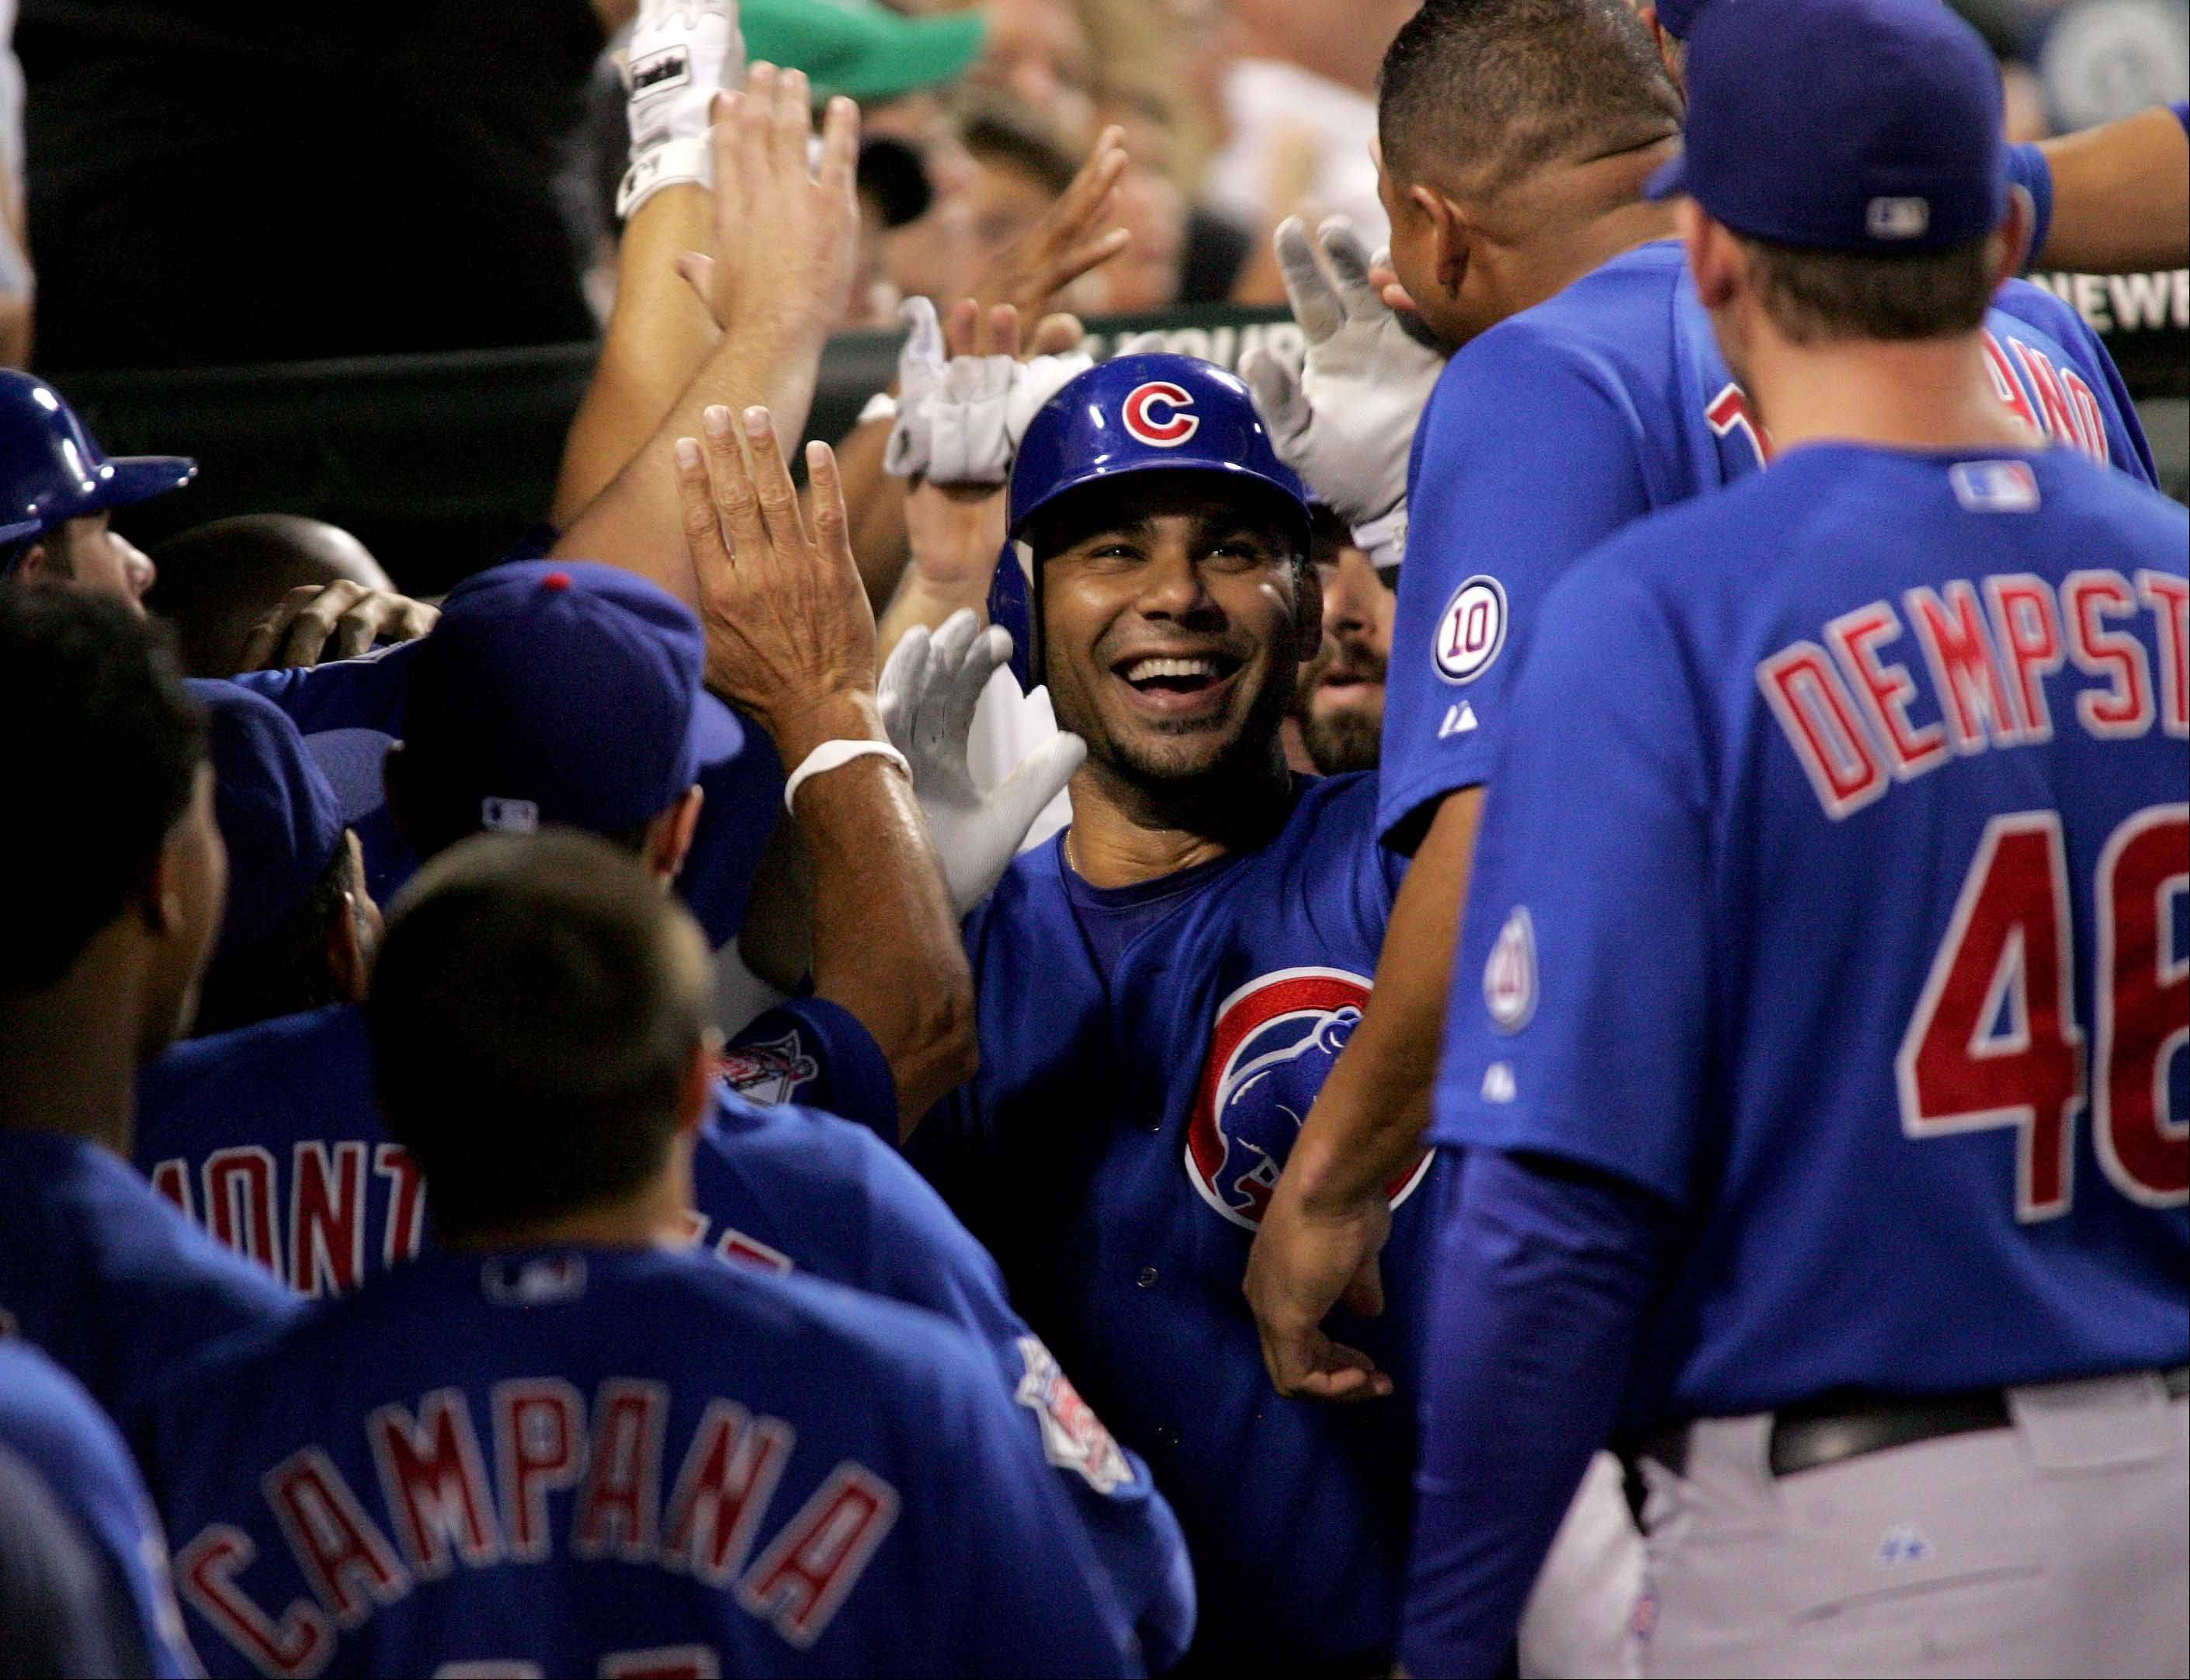 Carlos Pena of the Cubs is greeted in the dugout after hitting a 3-run home run in the 6th inning against the White Sox.